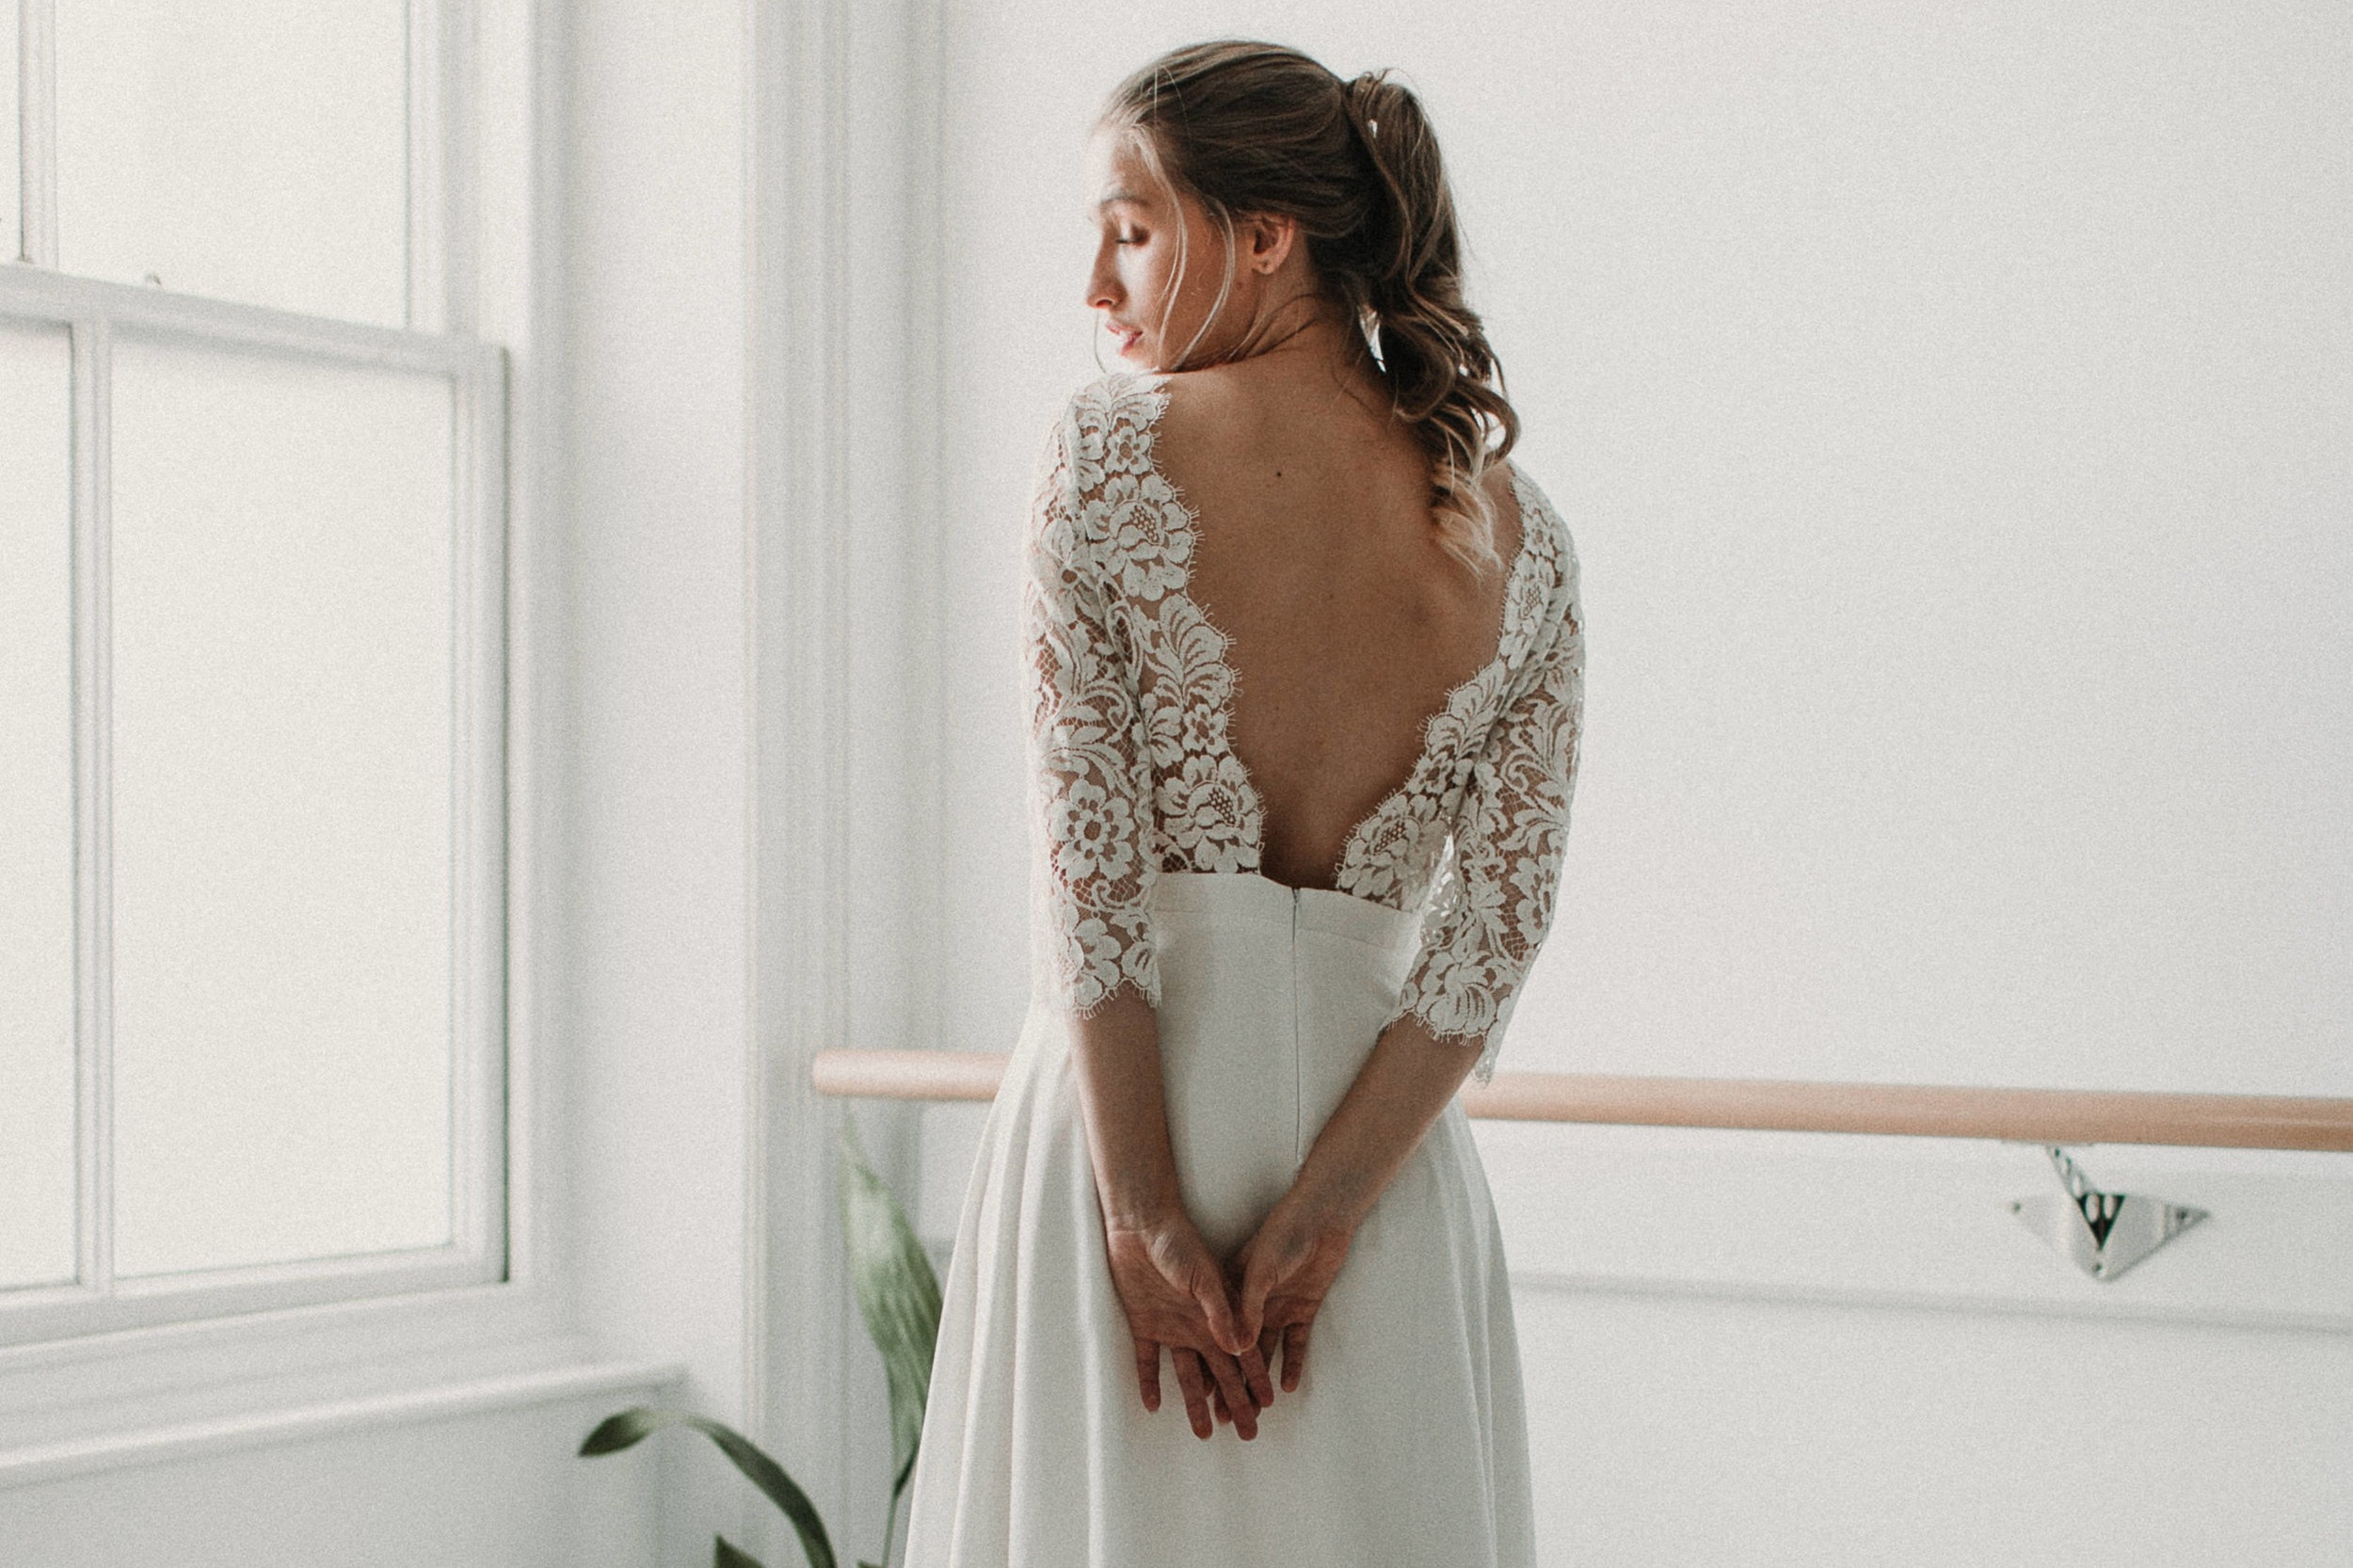 Luna Bride New Collection - A stunning new collection of eco friendly wedding gowns.